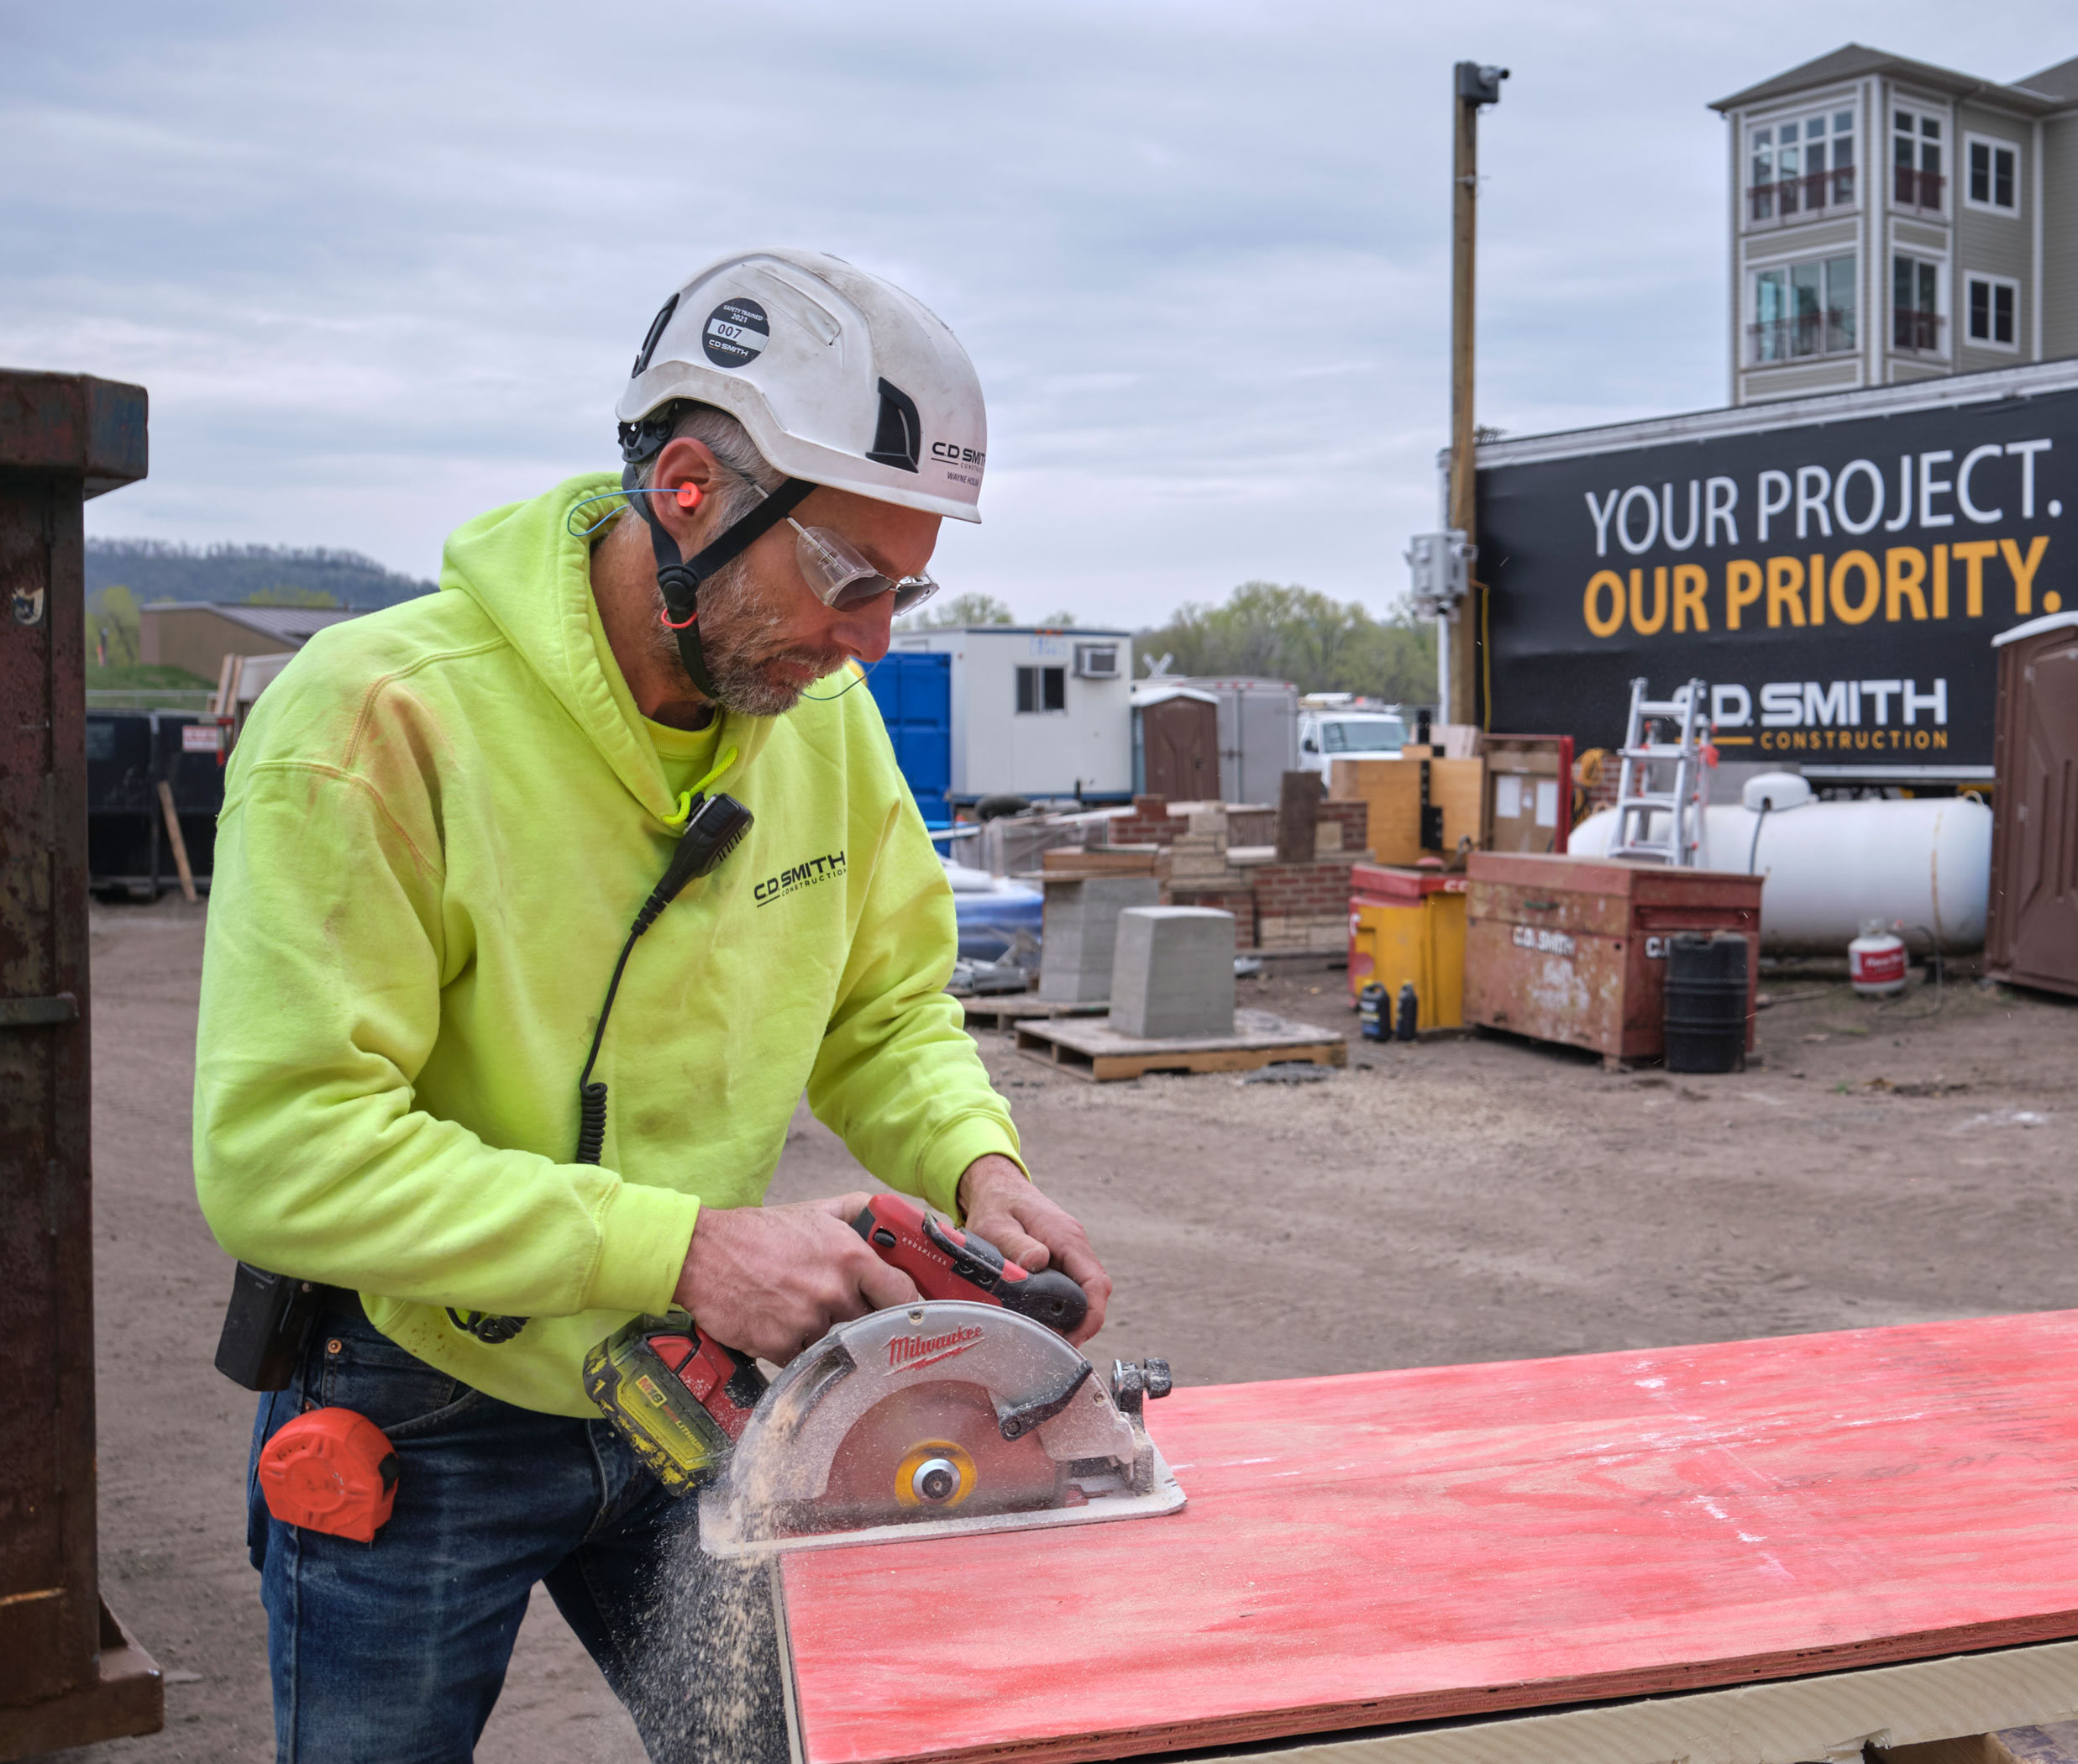 C.D. Smith Construction Superintendent Wayne Holum working in the field on a commercial project jobsite